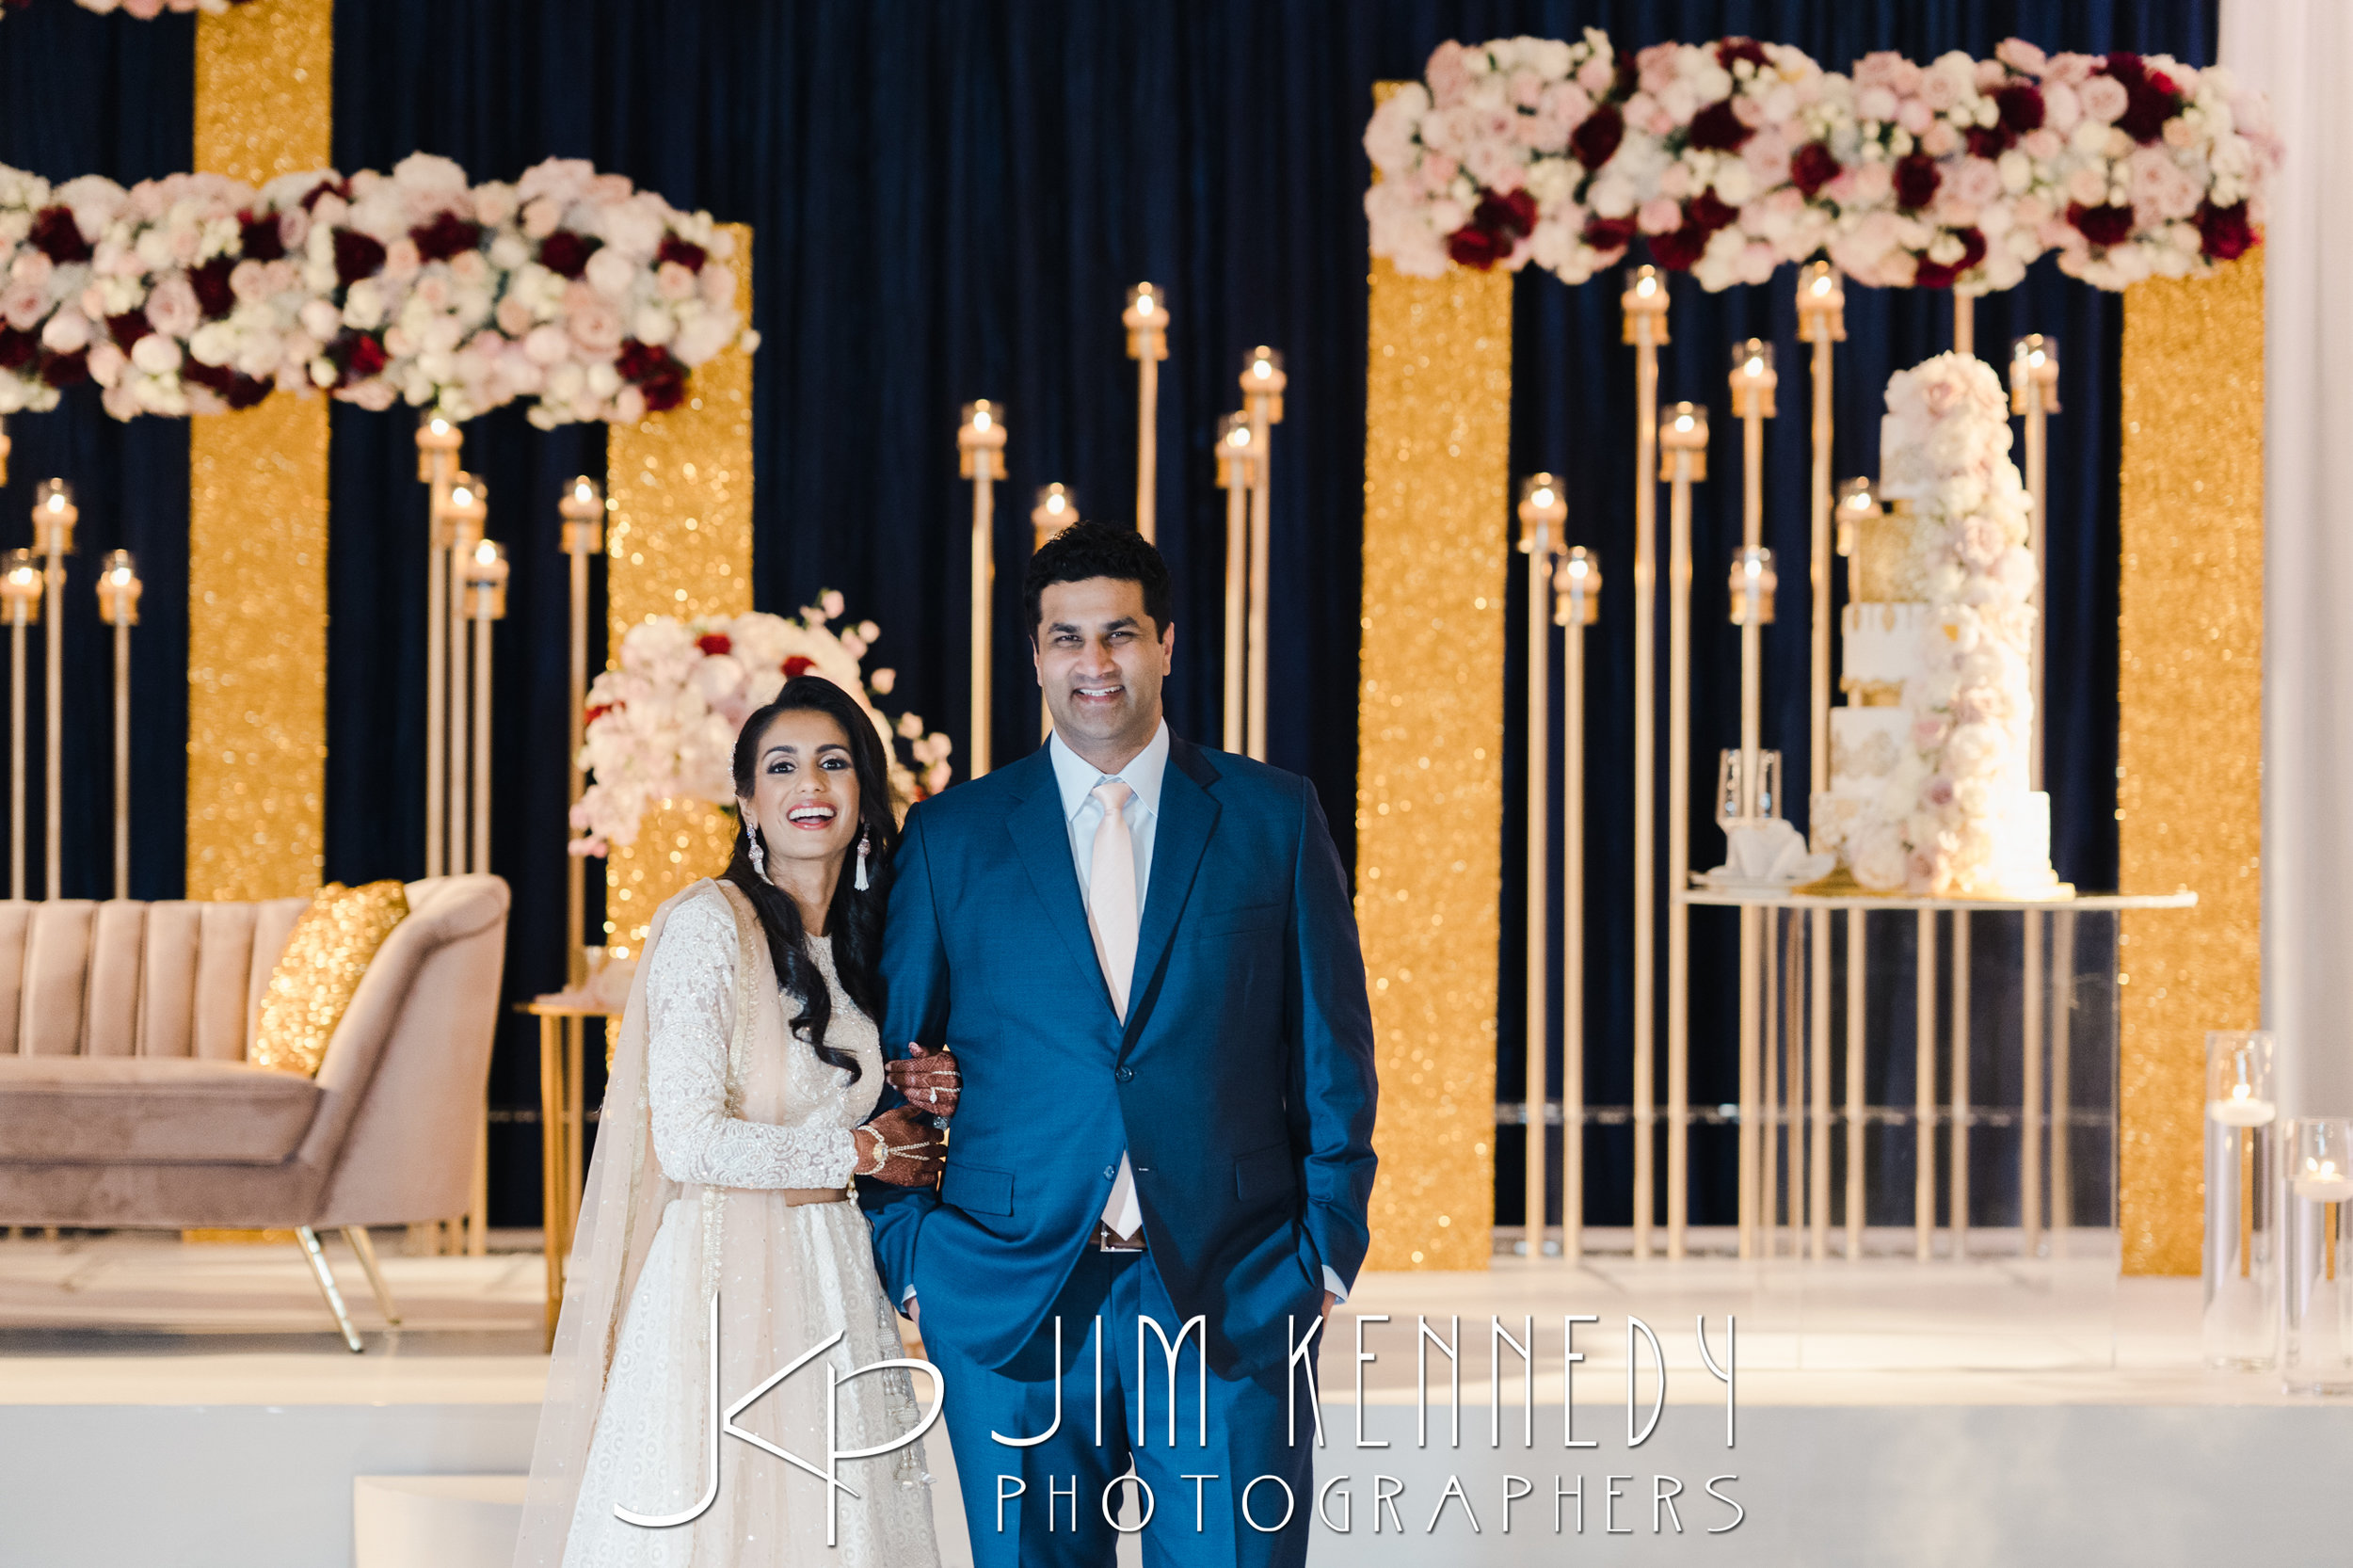 ritz-carlton-wedding-janaki-sameer_0242.JPG